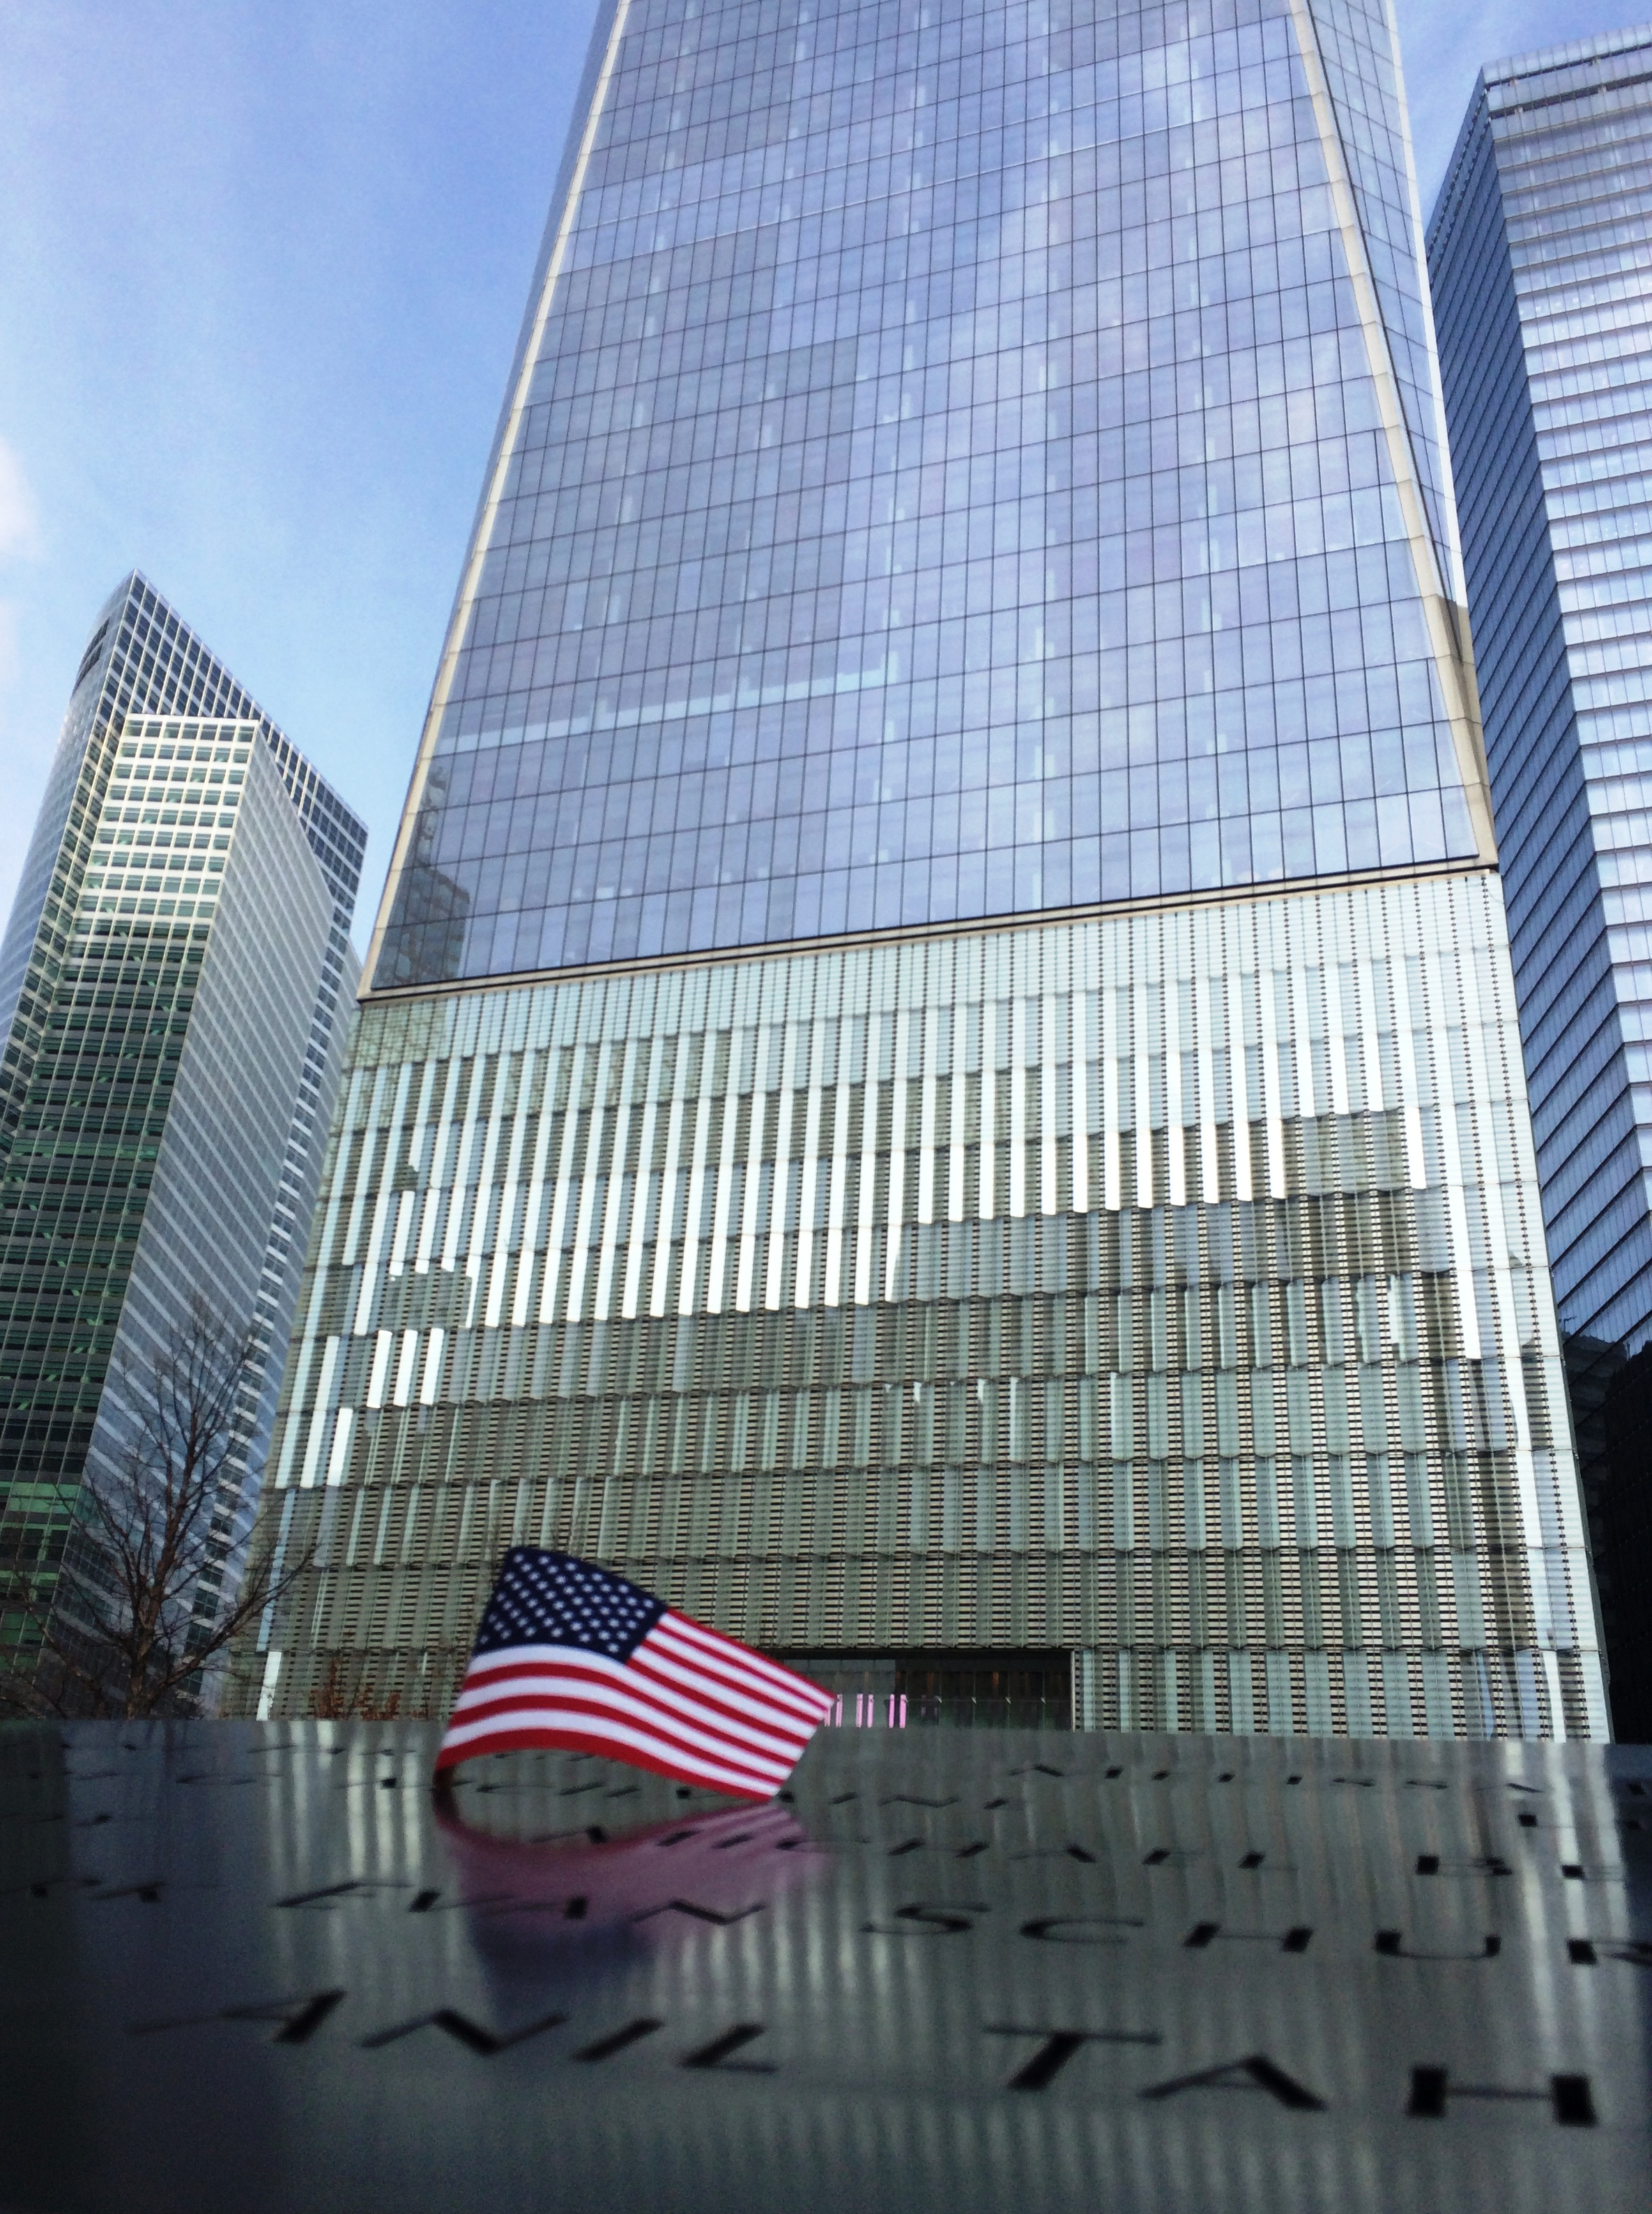 9/11 Memorial, New York City, NY, Feb. 10, 2016